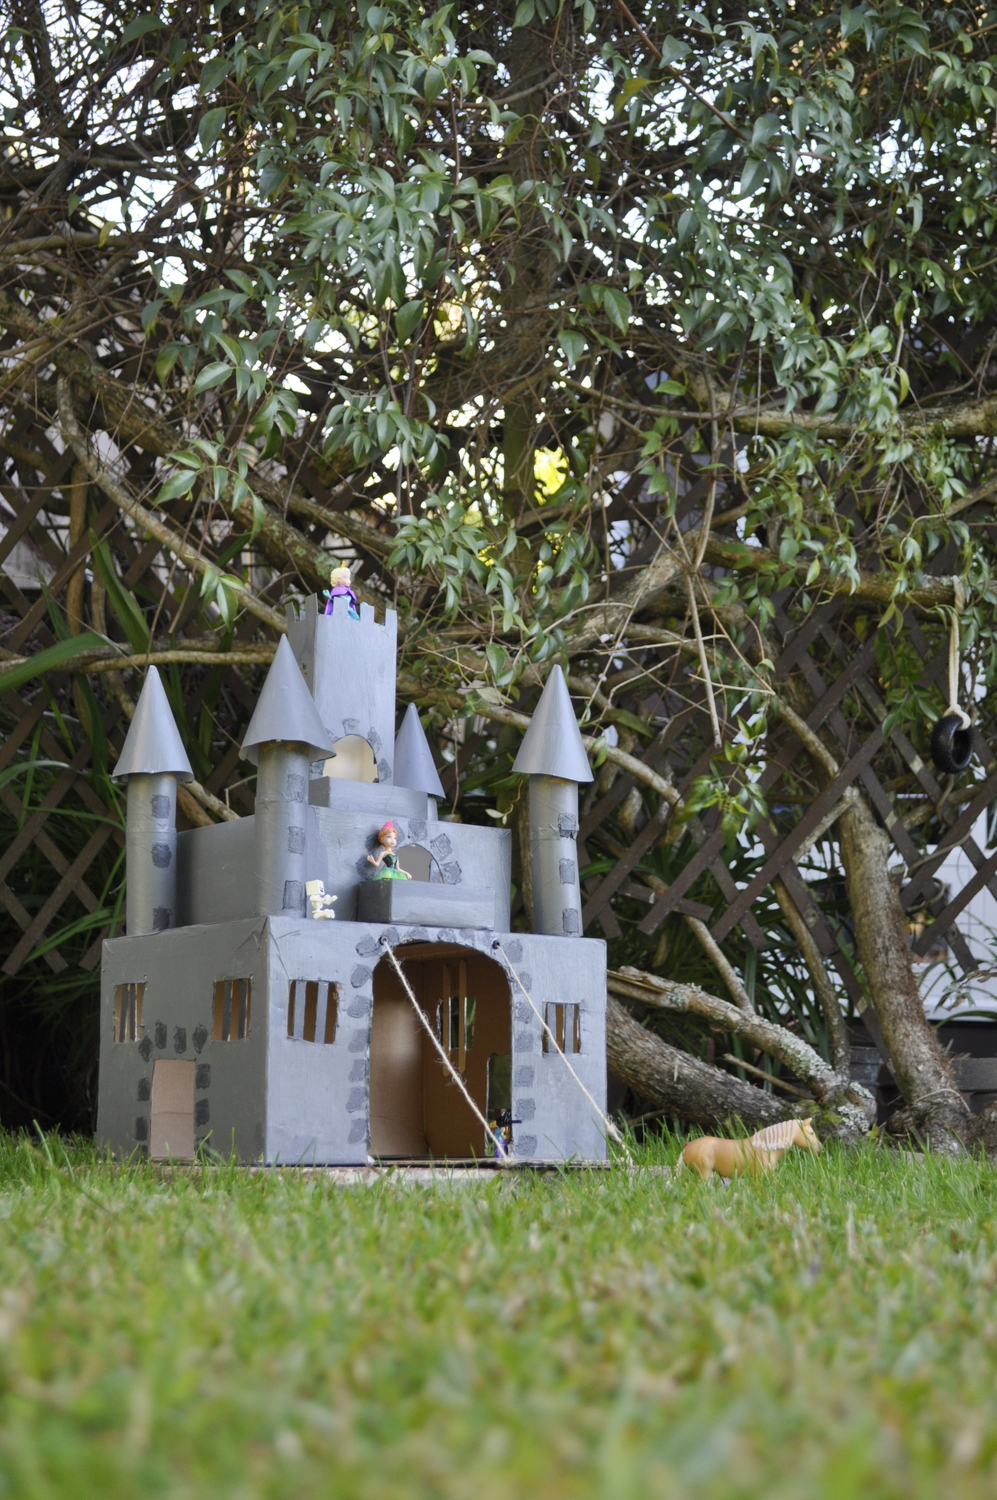 Make a castle out of recycled boxes - how cool is this!